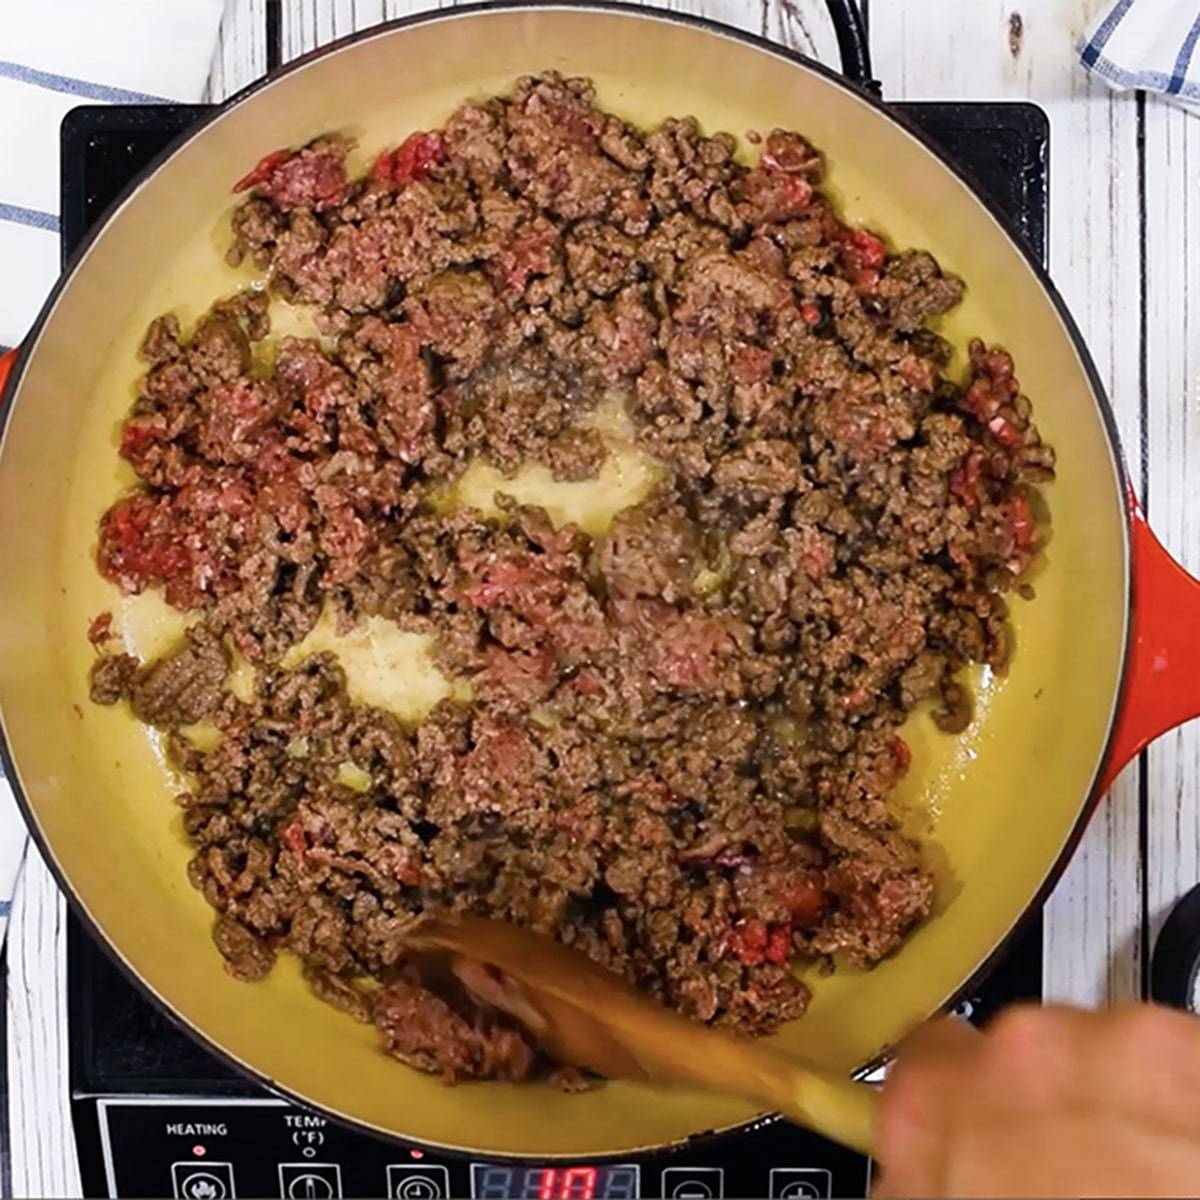 Browing ground beef in a skillet.